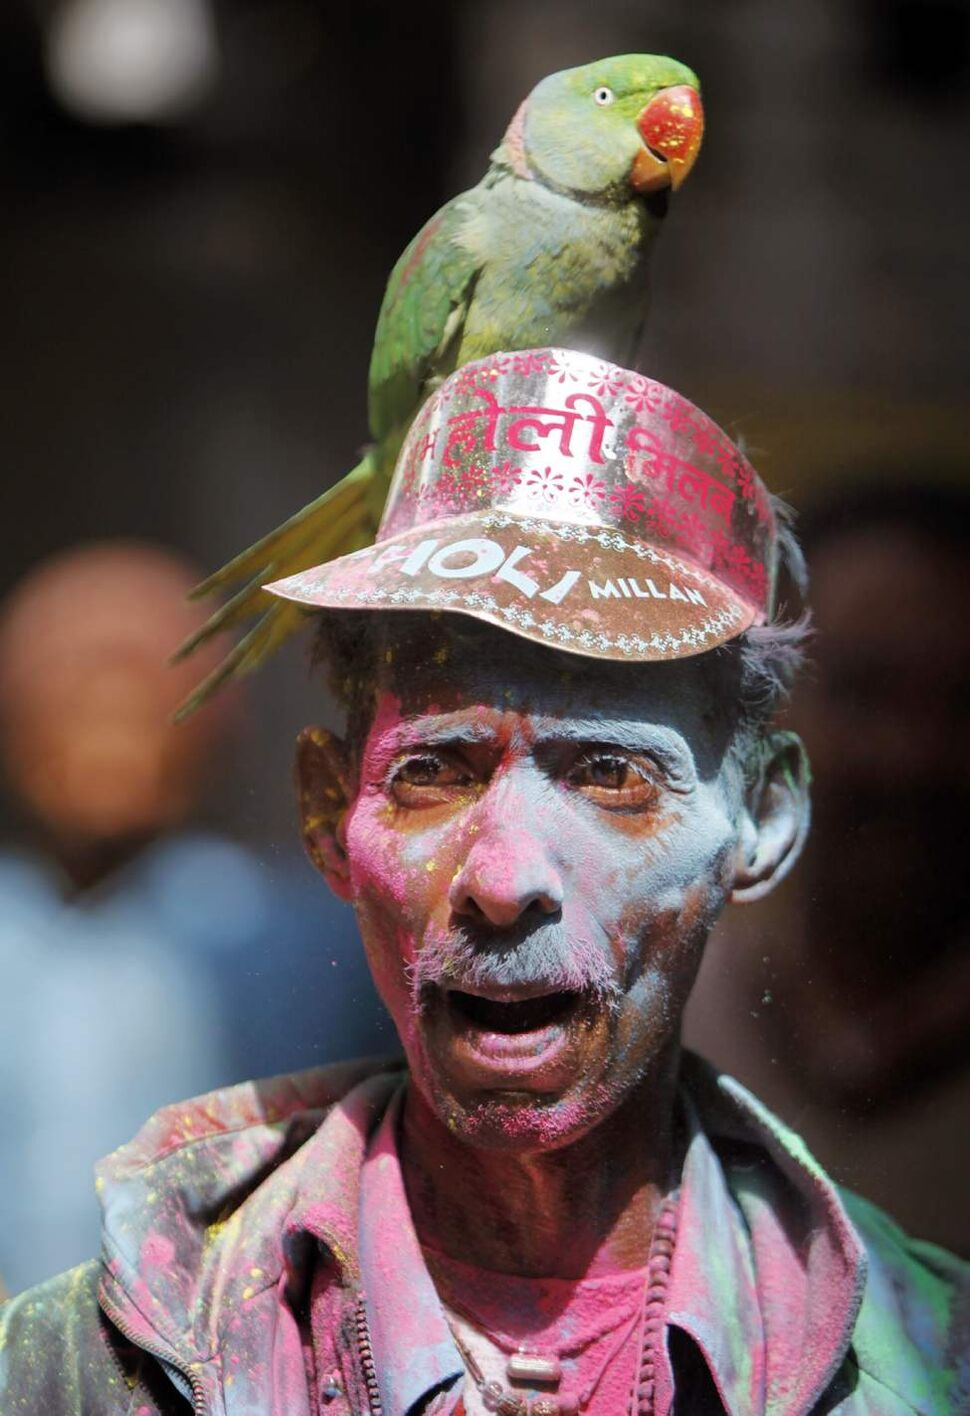 An Indian man with a colored face carries a parrot as he celebrates Holi in Jammu, India, Wednesday, March 7, 2012. Holi, the Hindu festival of colors will be celebrated across the country on March 8. (AP Photo/Channi Anand) (CP)